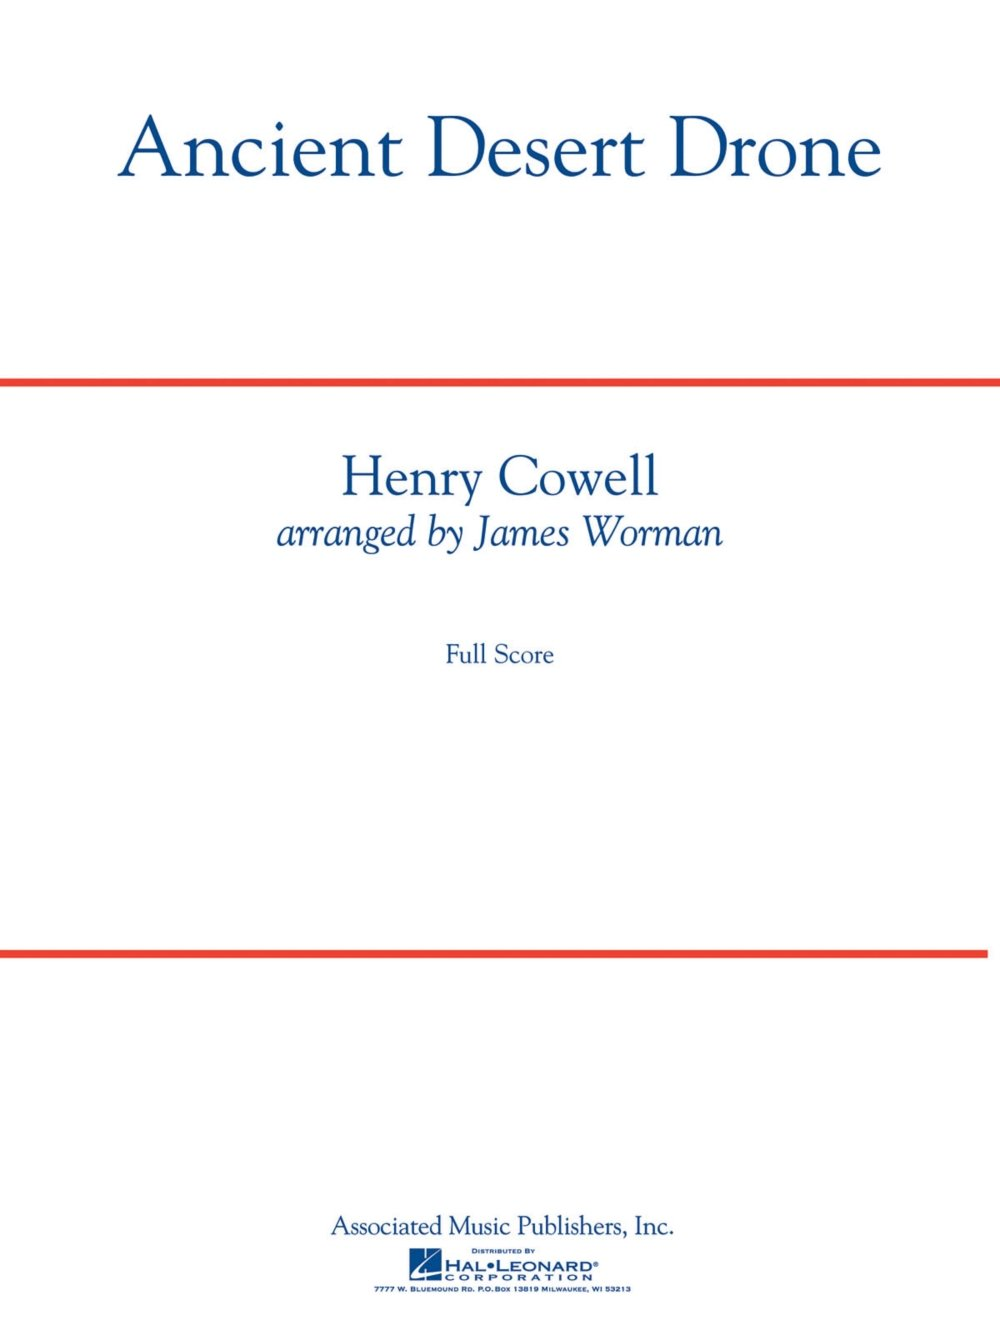 Read Online G. Schirmer Ancient Desert Drone Concert Band Level 5 Composed by Henry Cowell pdf epub